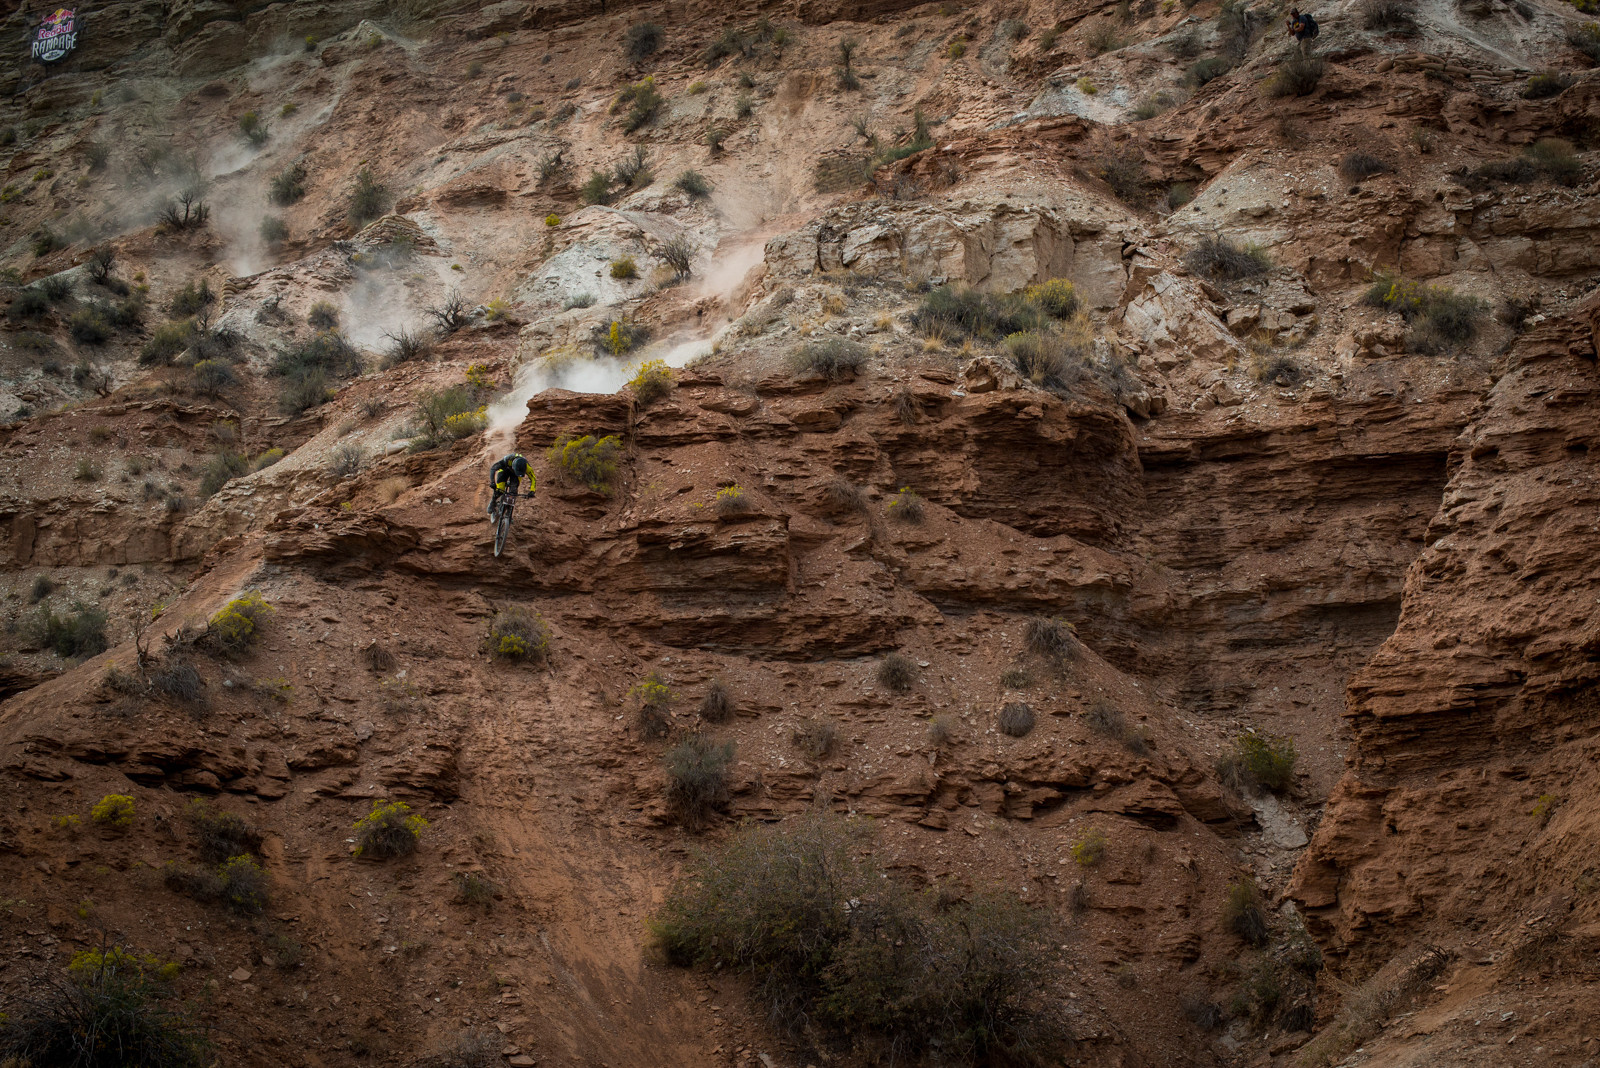 Mitch Chubey - 2015 Red Bull Rampage Finals - Mountain Biking Pictures - Vital MTB